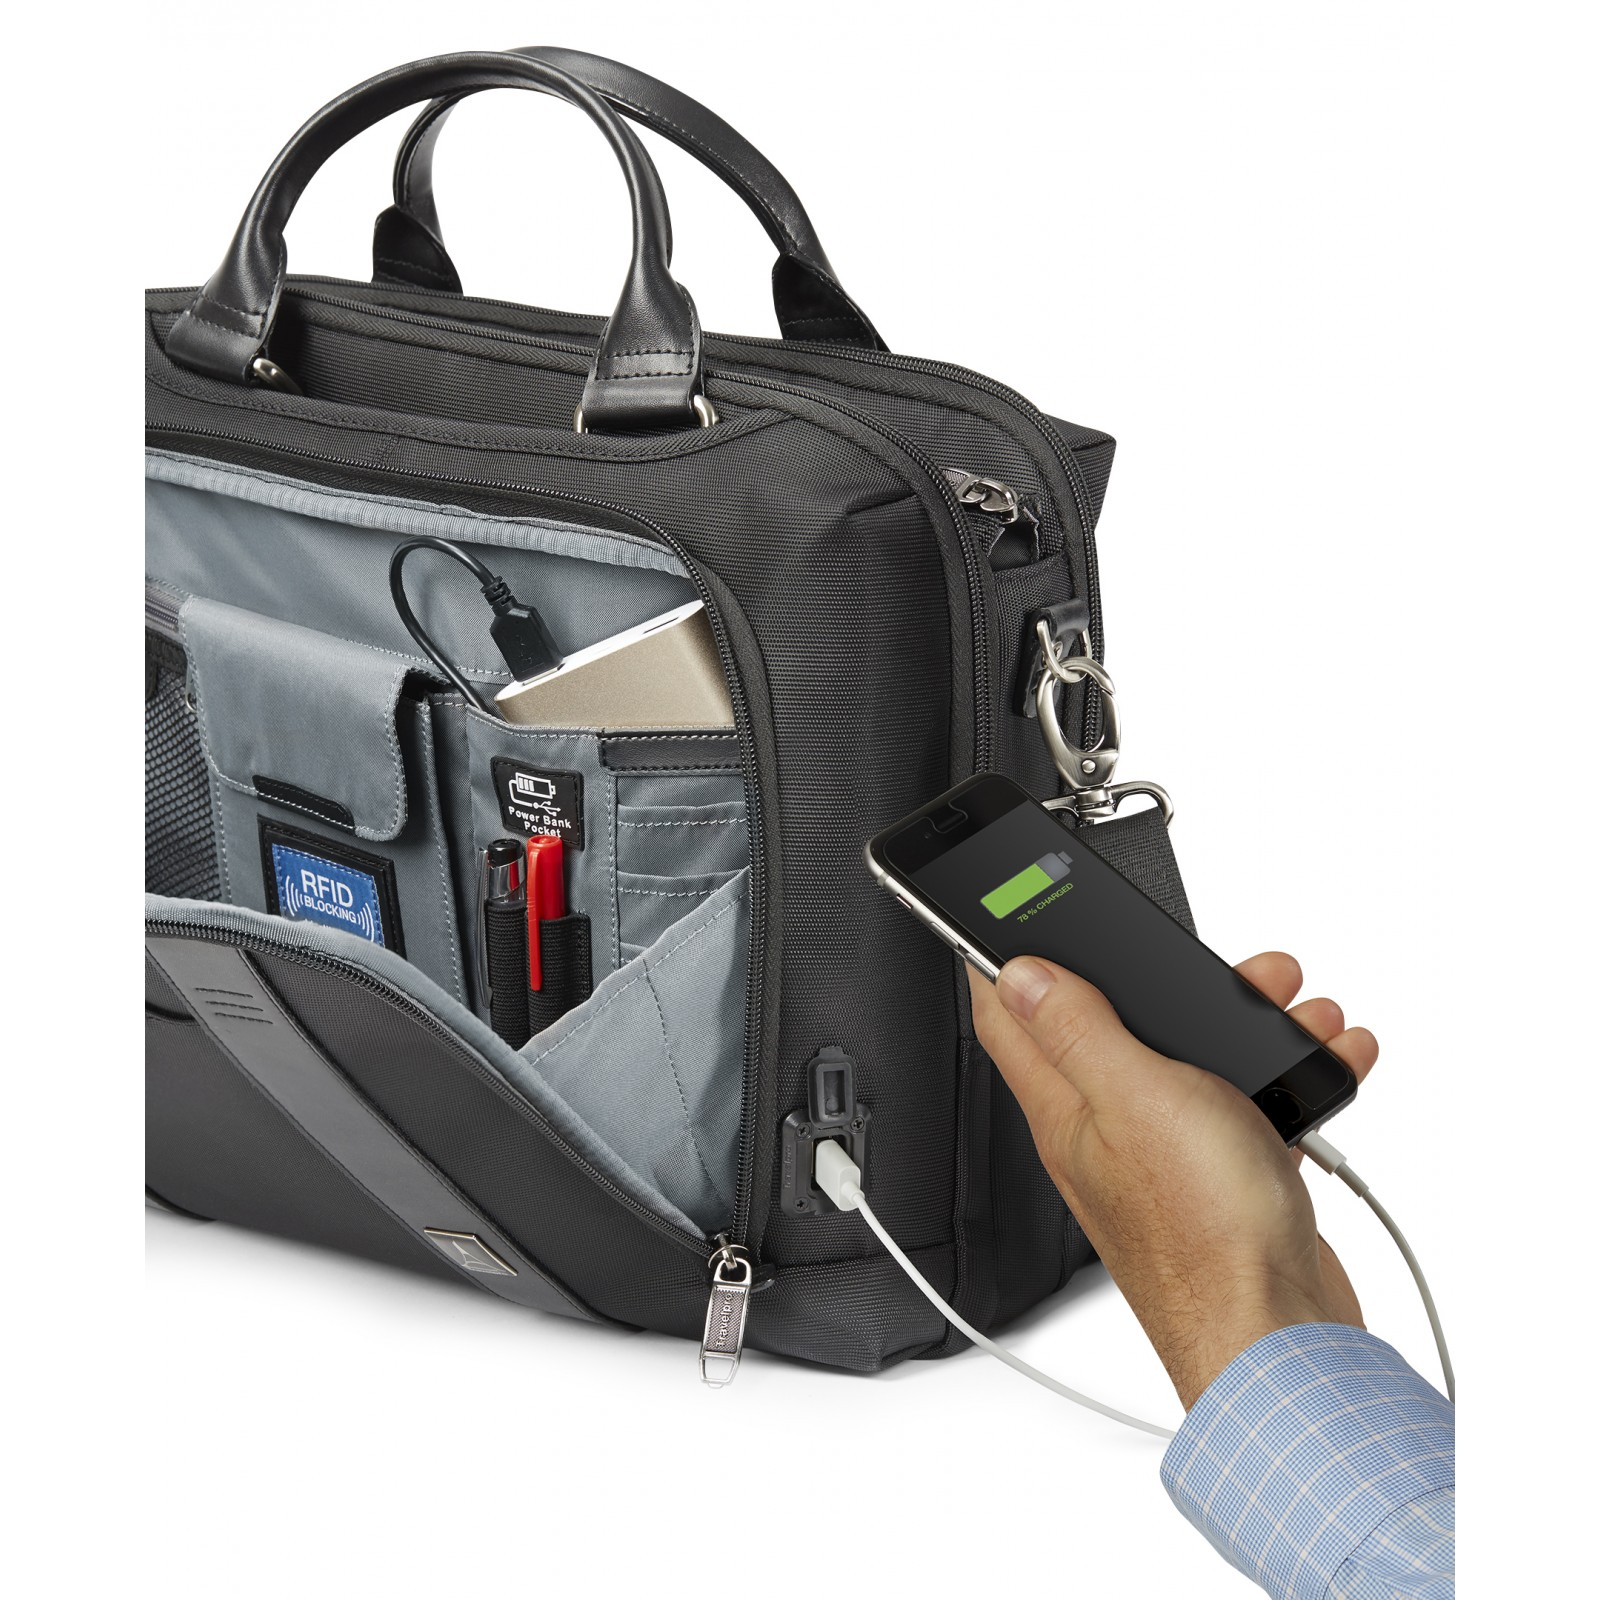 Our clothing for men and women is designed with pockets and features to securely hold and organize all of your personal belongings.